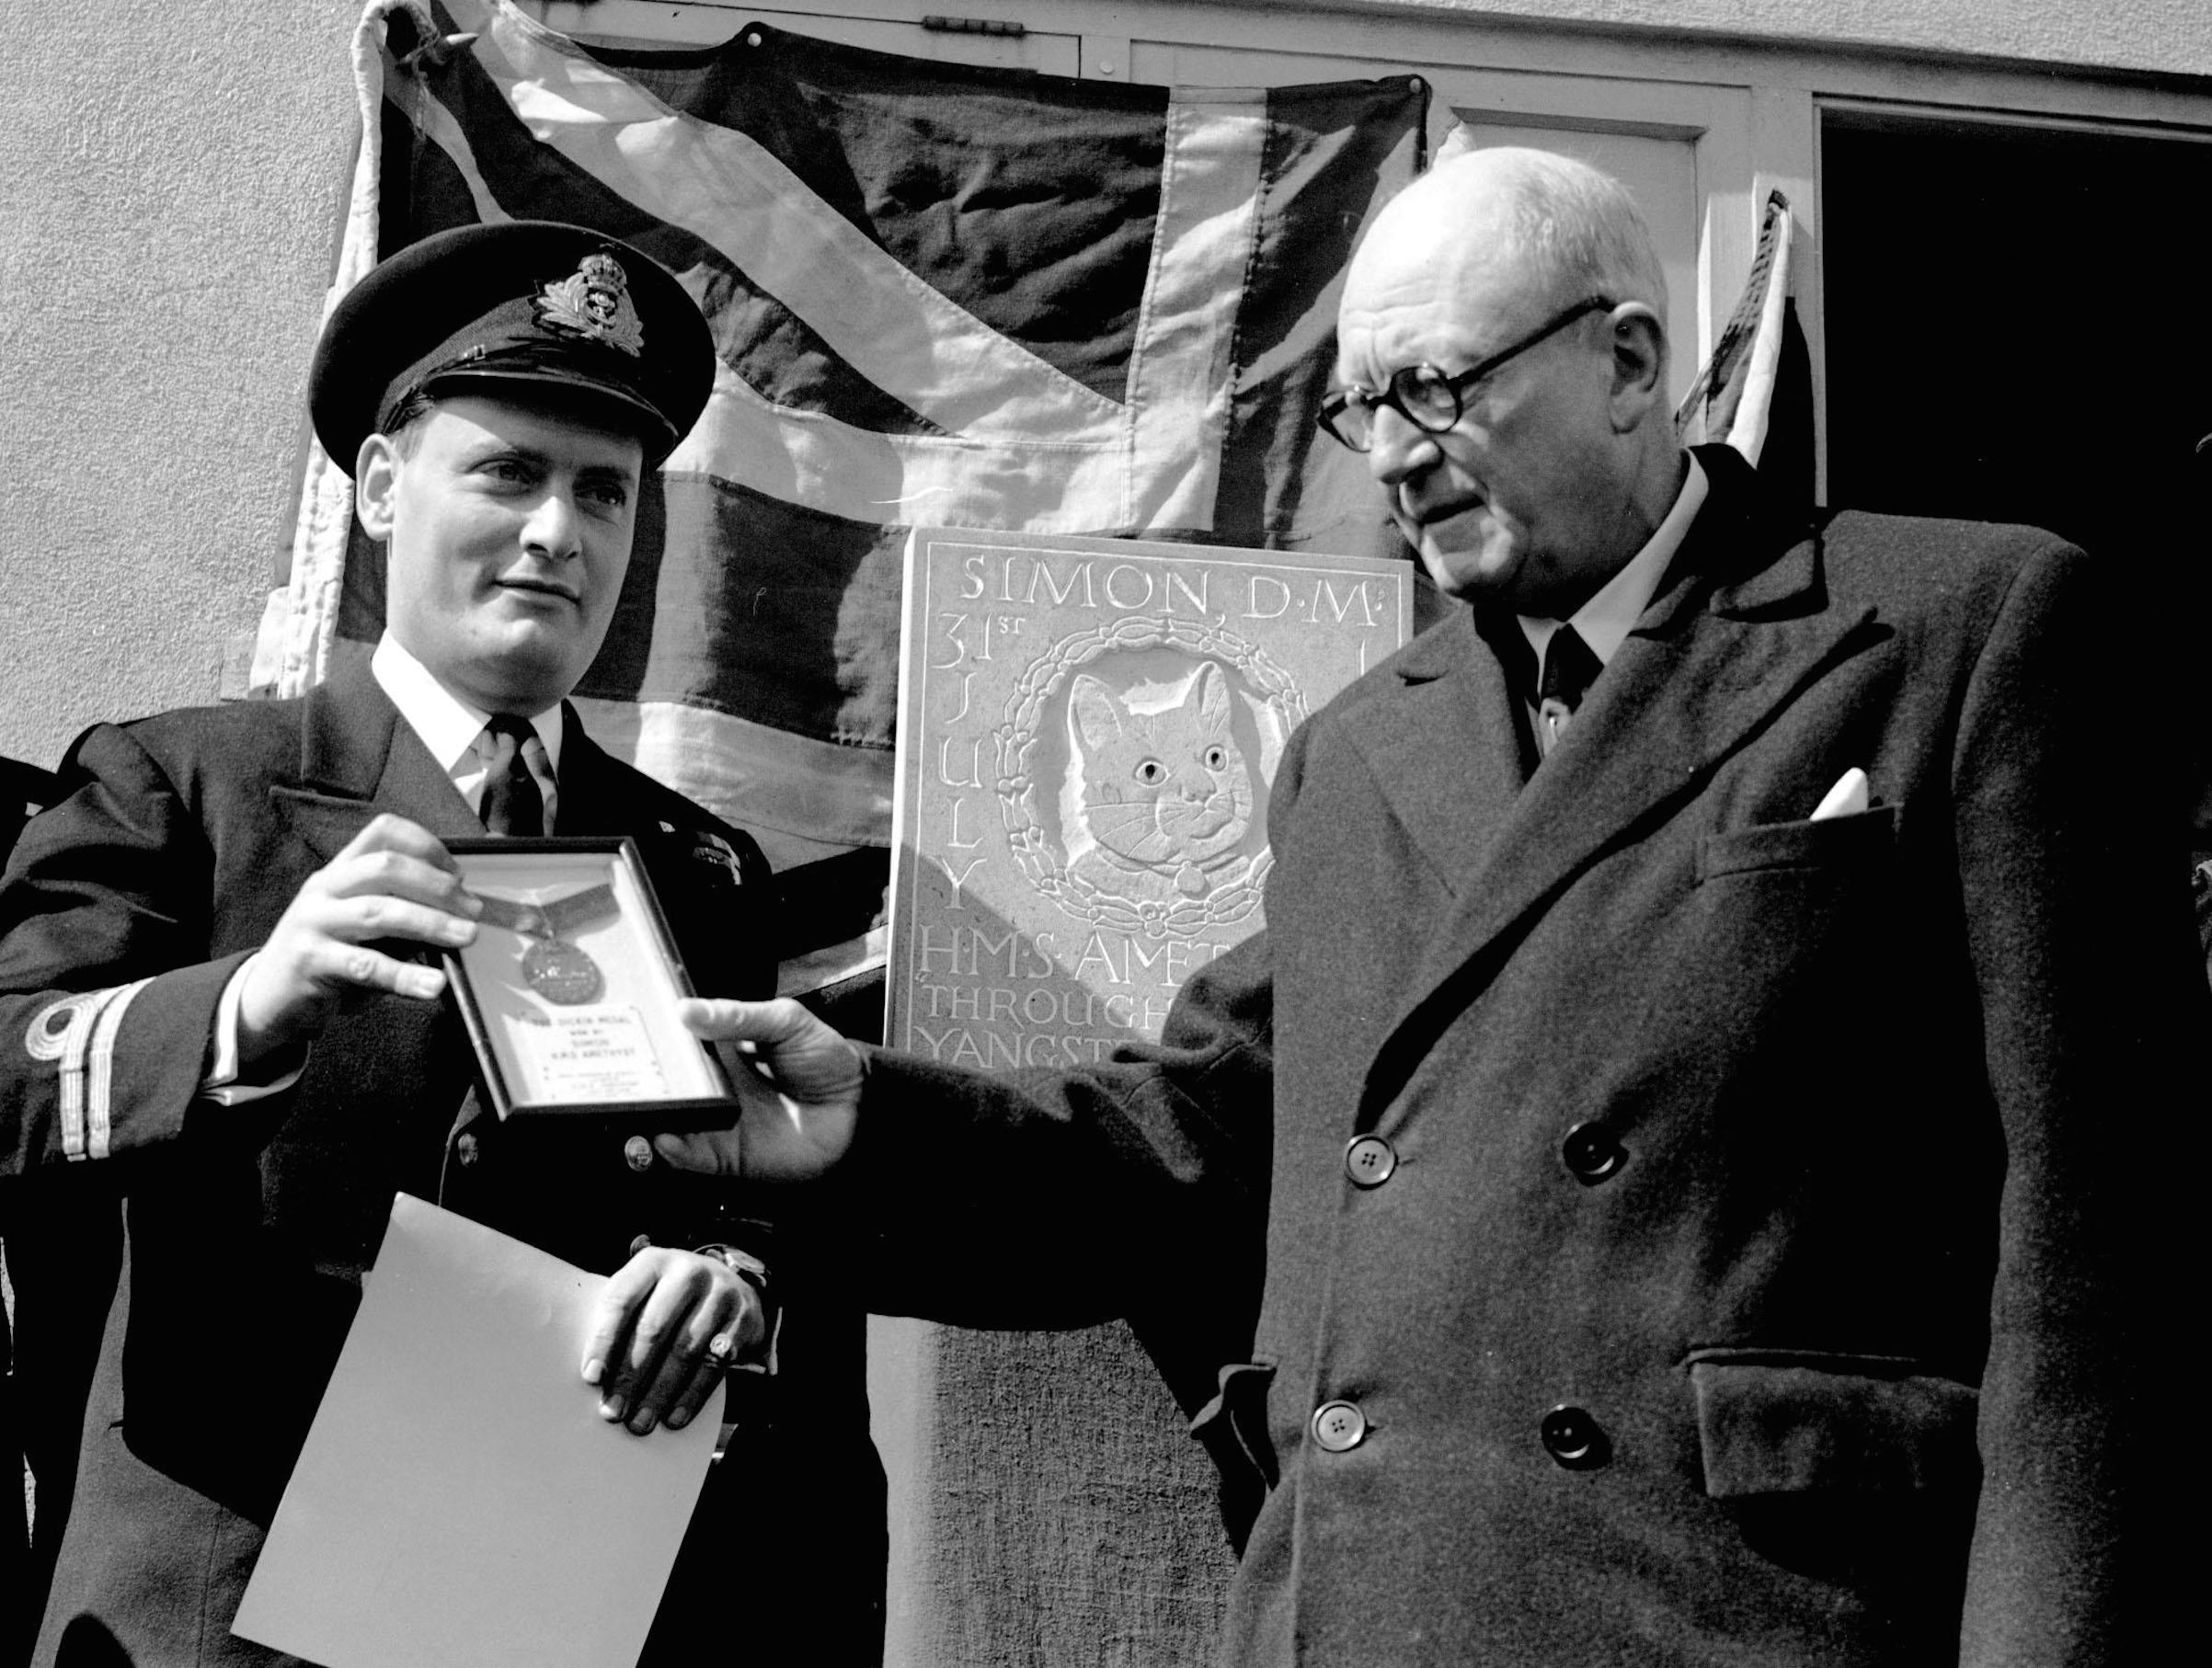 Alderman W. Harry Taylor with Lieutenant Geoffrey Weston (L) who assumed command of the frigate Amethyst, unveiling a plaque in memory of the ship's cat Simon, in Plymouth, after the cat received the Dickin Medal, for catching rats and protecting food supplies during the time the ship was trapped by the Chinese